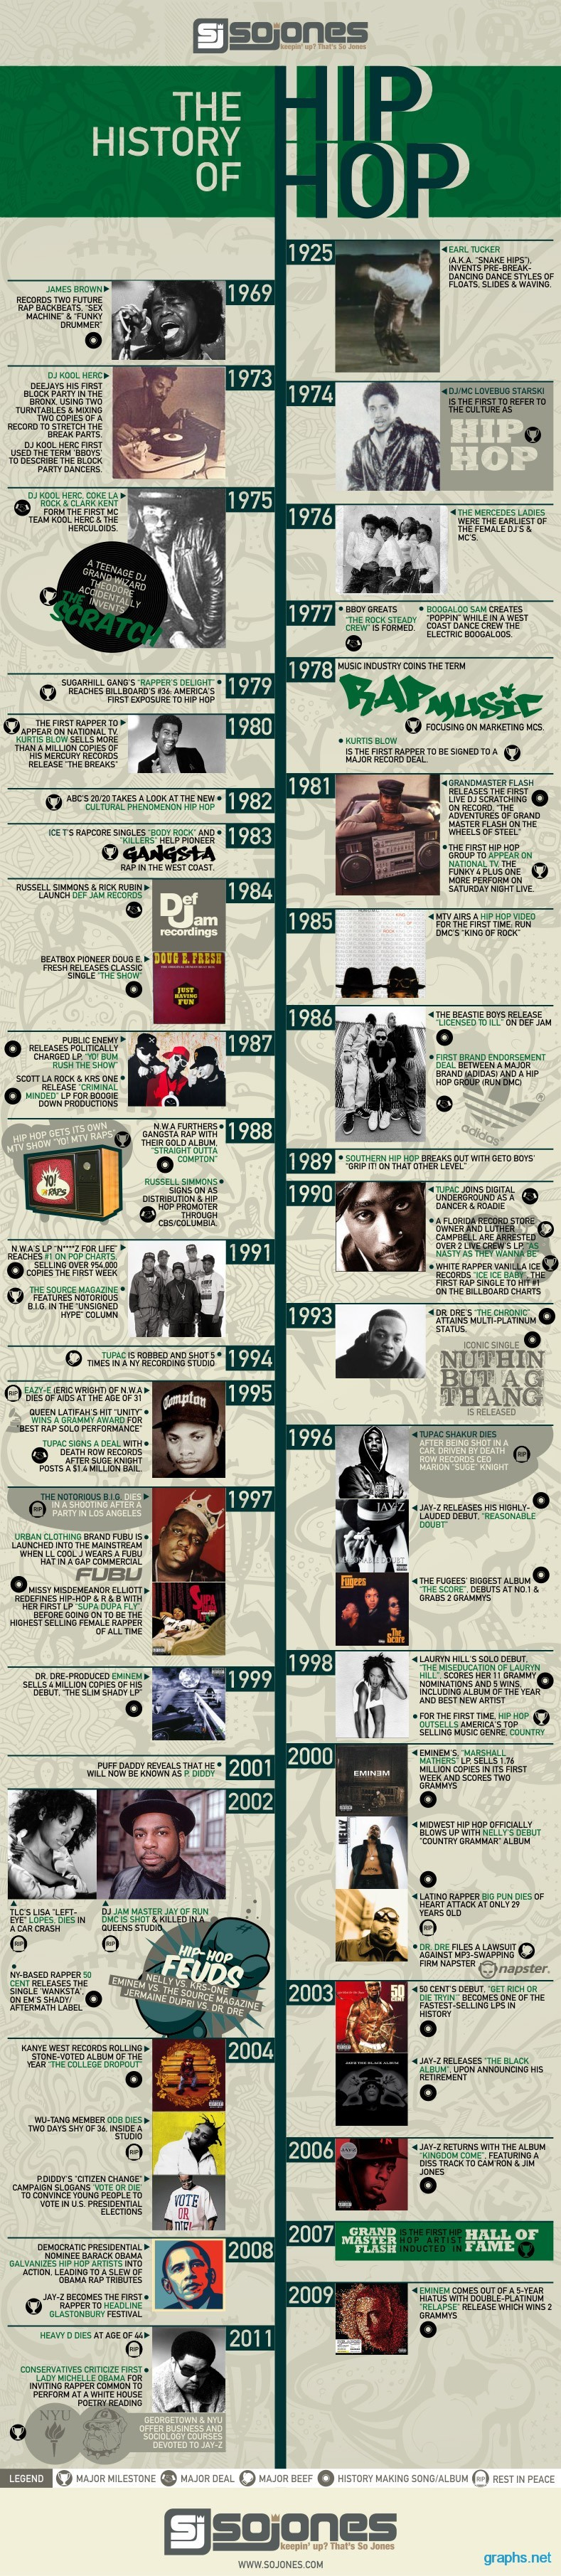 timeline of hip hop history